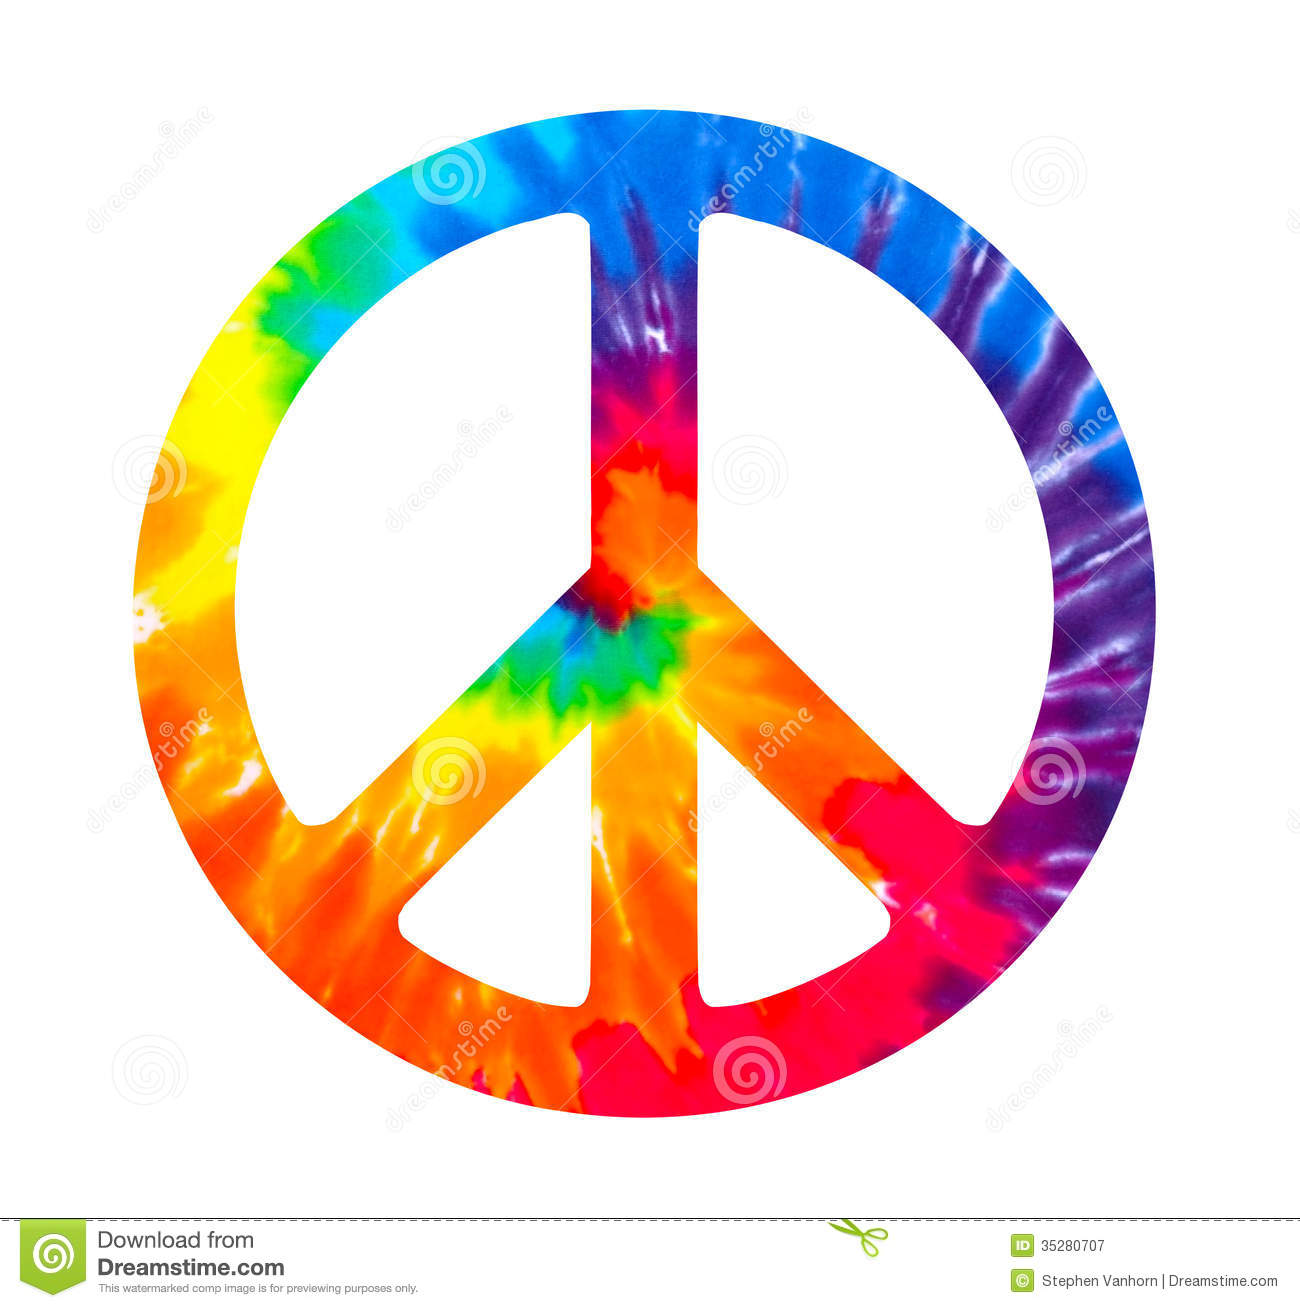 Peace Sign Royalty Free Stock Photography - Image: 35280707